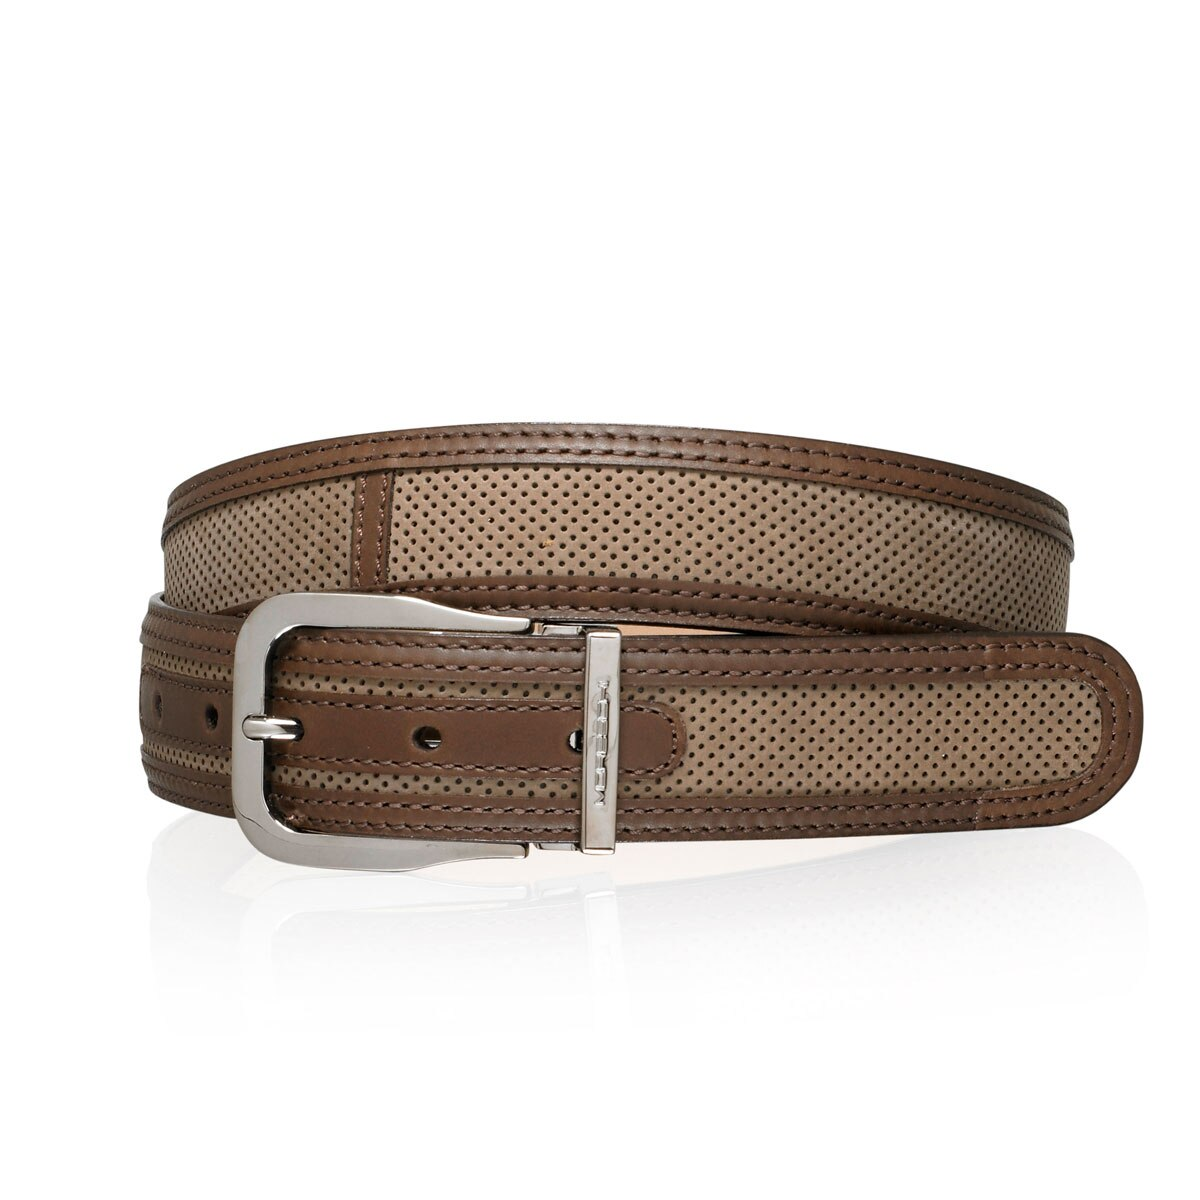 PORTOFINO Perforated Matching Belt